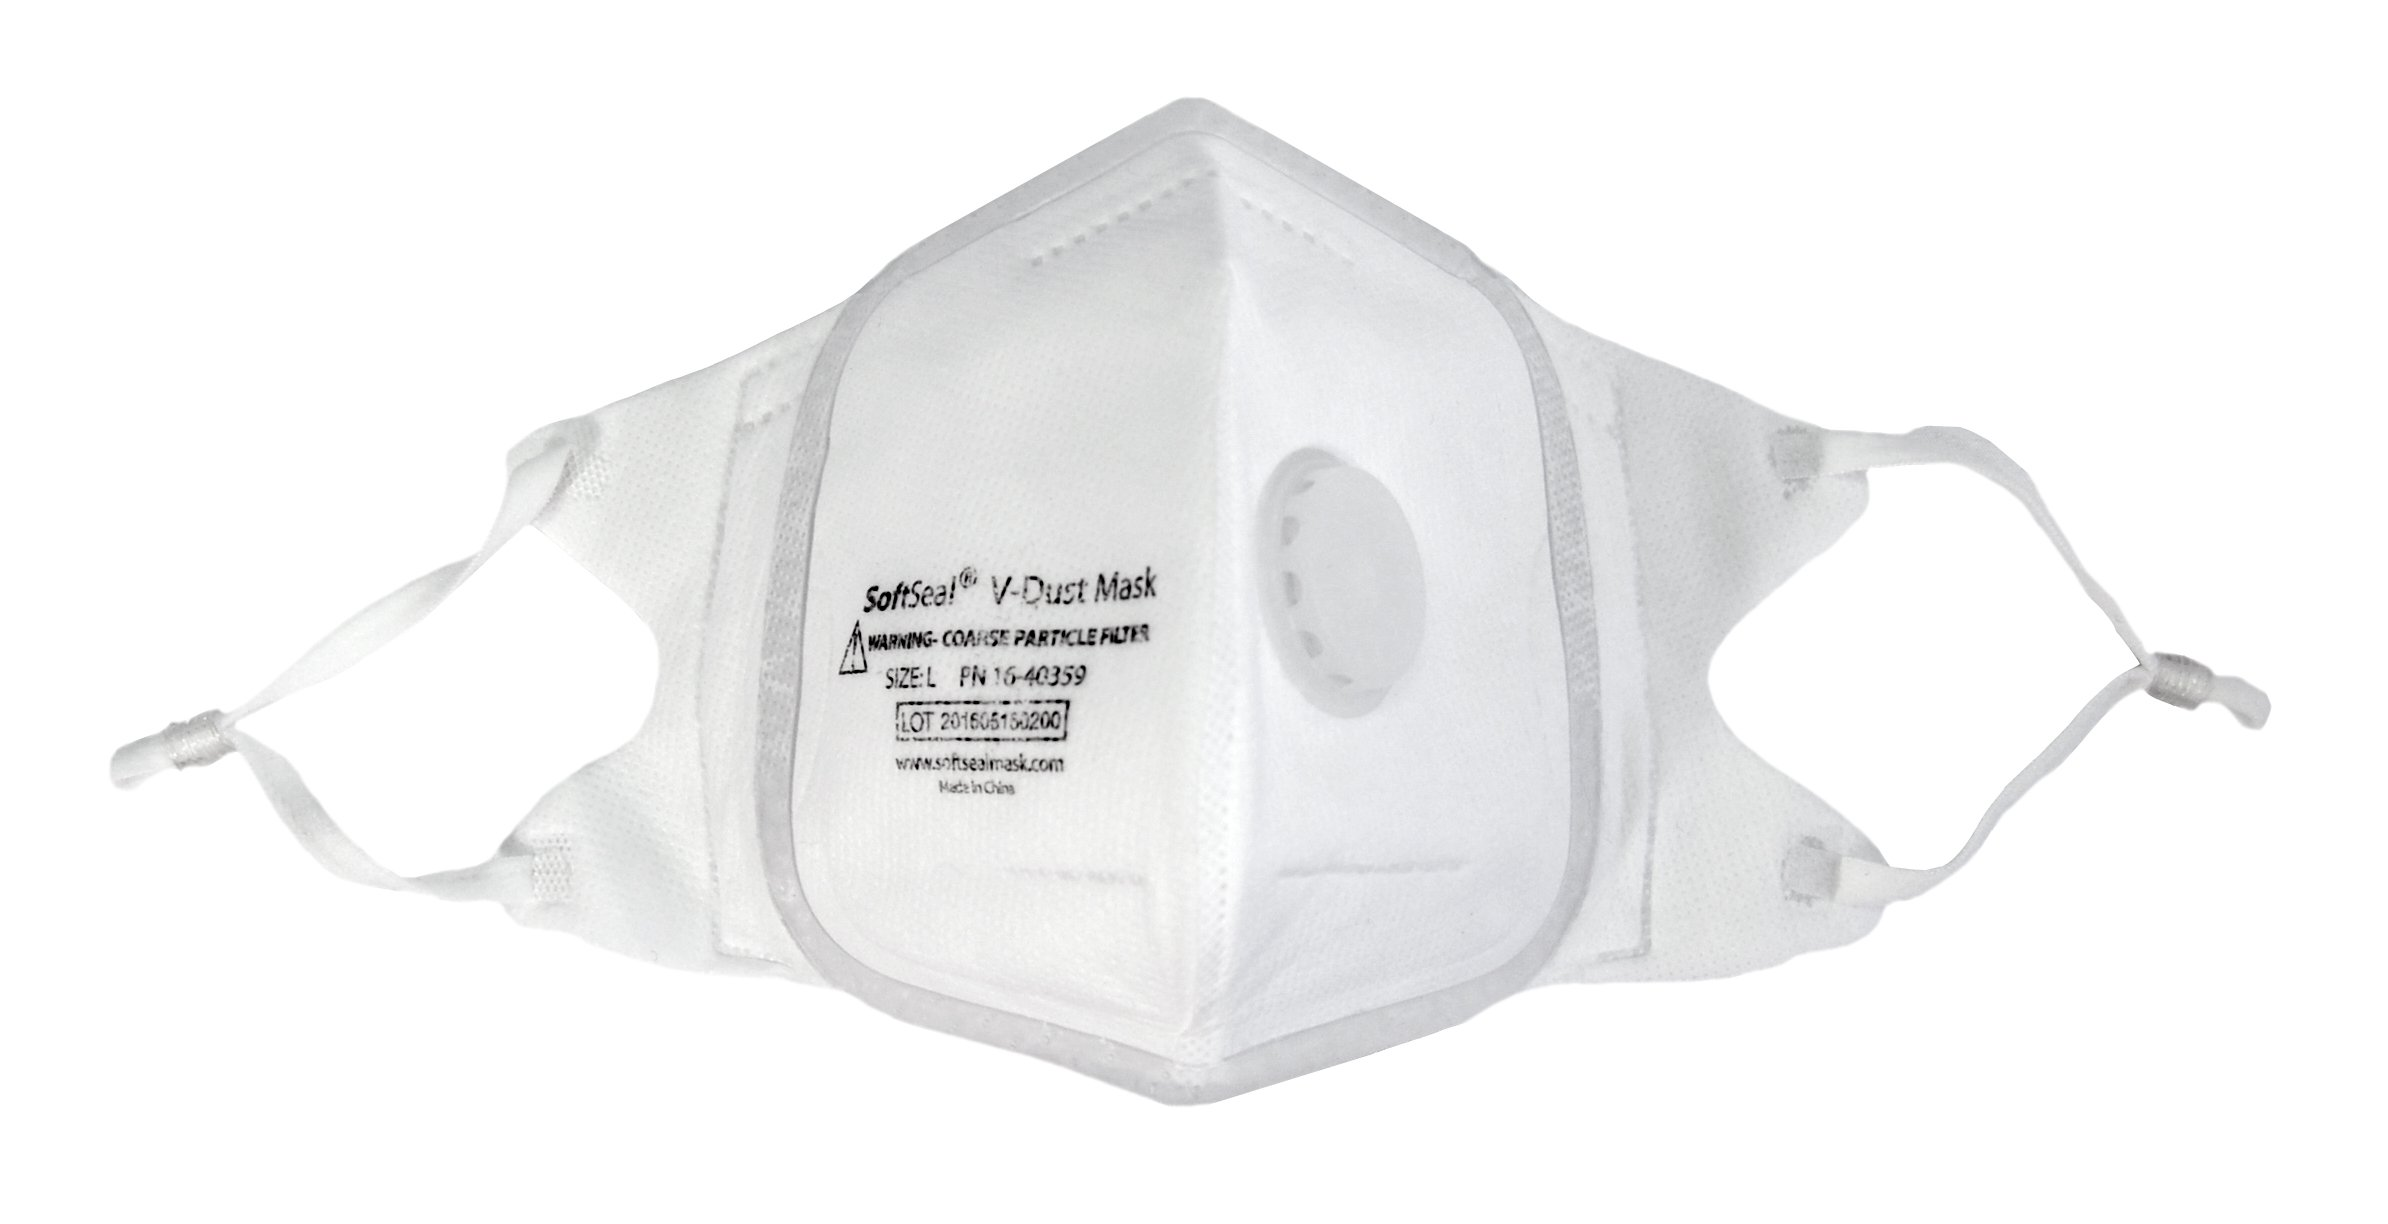 V-Fold Particle Filtration Respirator Mask by SoftSeal | Patented Silicone Mold for a Perfect Fit and Seal | Sweat Resistant Work Safety Mask | For Dust, Mold, and Paint Fumes (6, Medium)